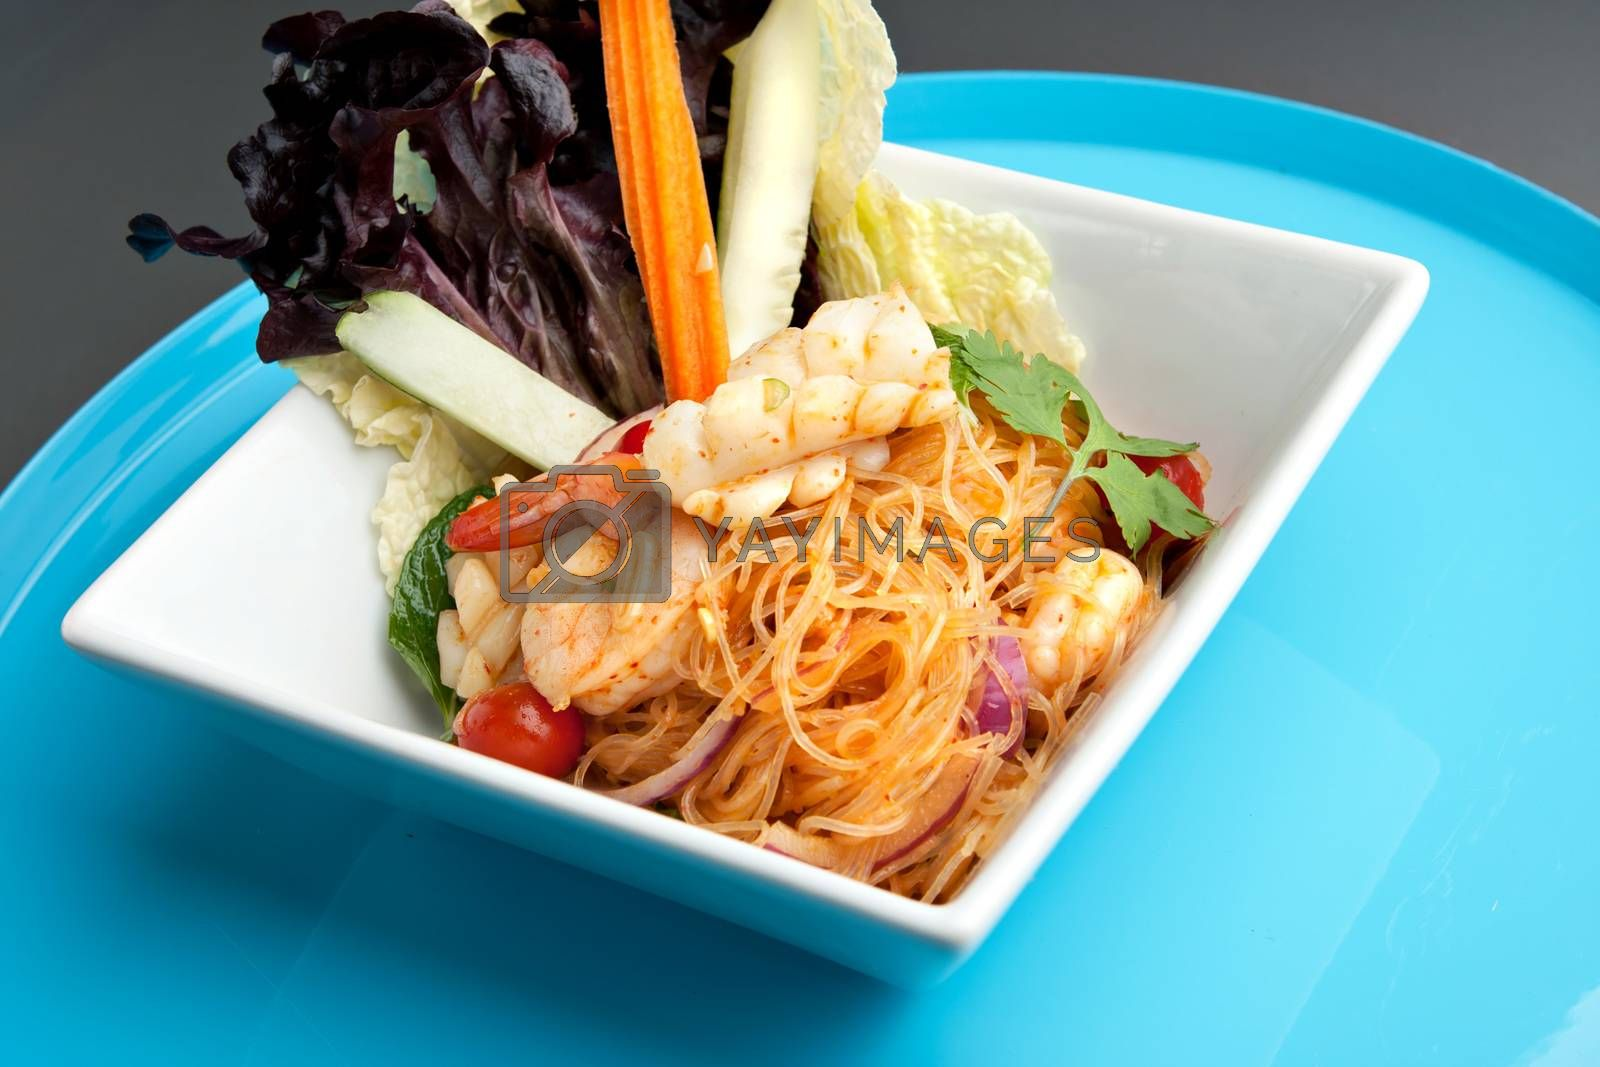 Thailand style shrimp and seafood salad with veggies.